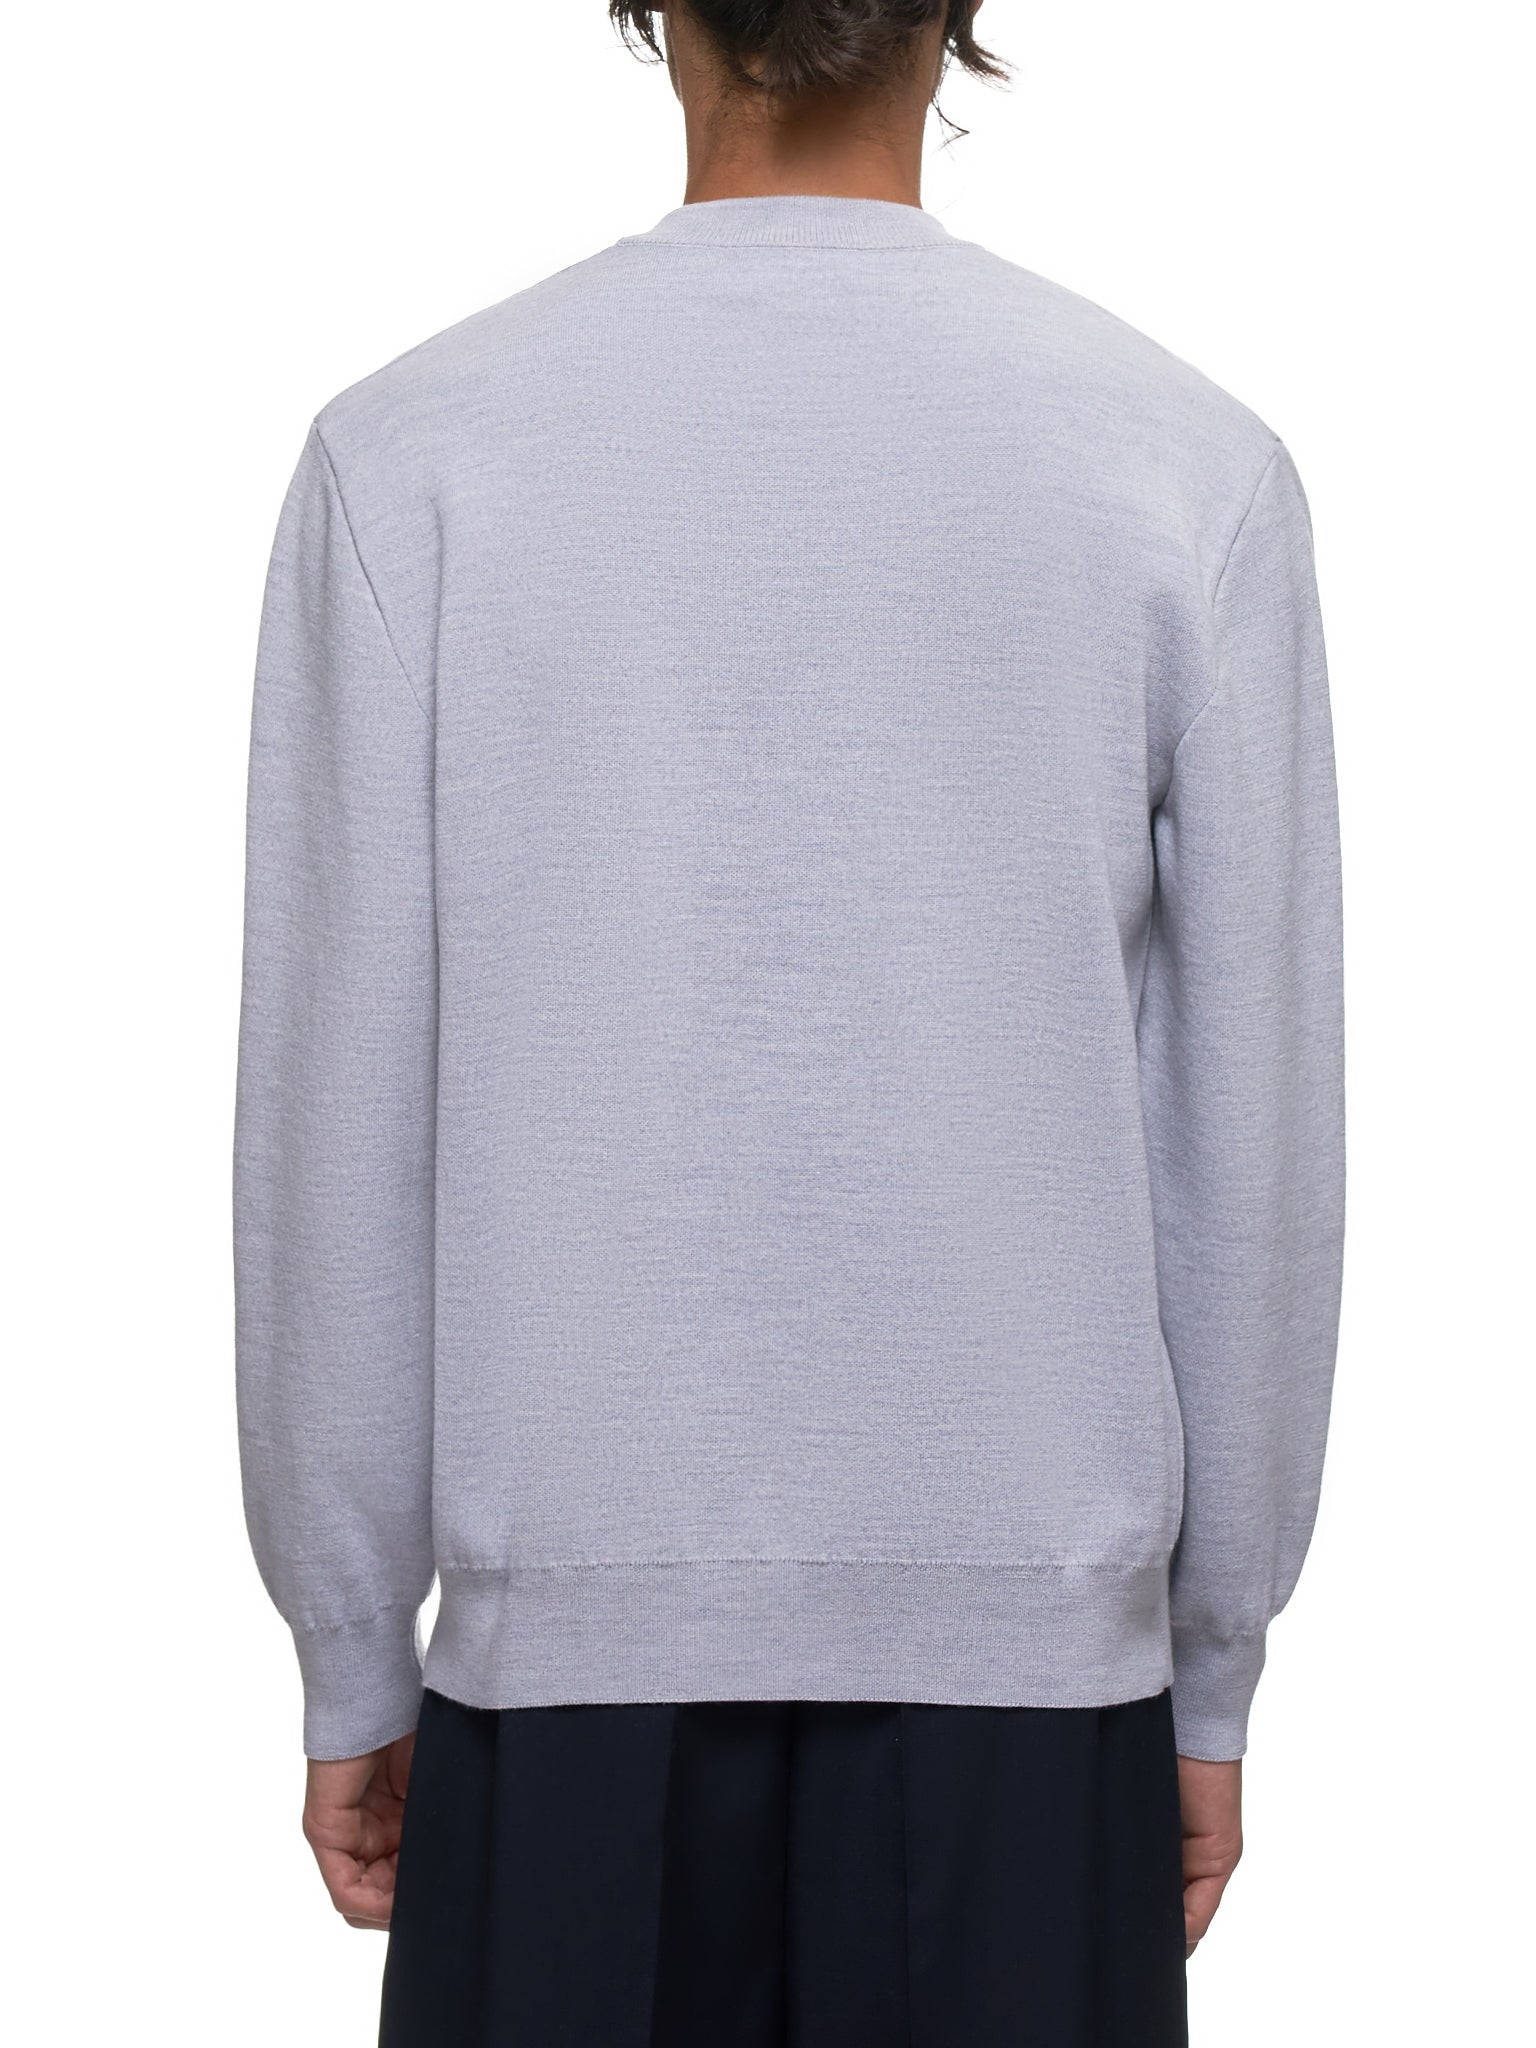 Botter Sweater - Hlorenzo Back